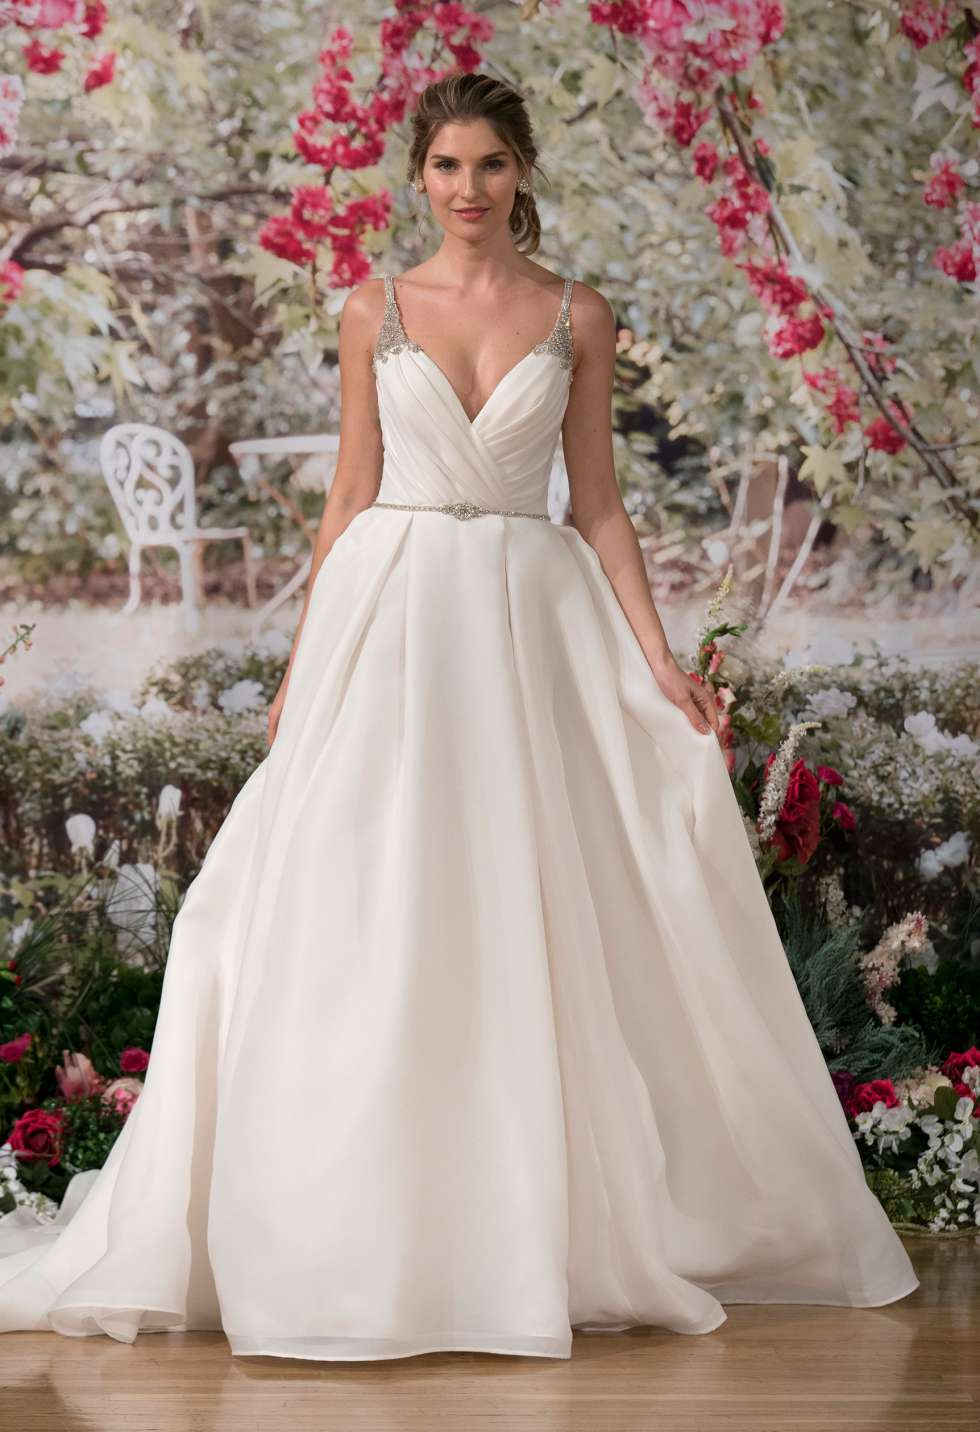 a3becc5926e The 2018 Spring Wedding Dresses by Maggie Sottero. The 2018 Spring Wedding  Dresses by Maggie Sottero